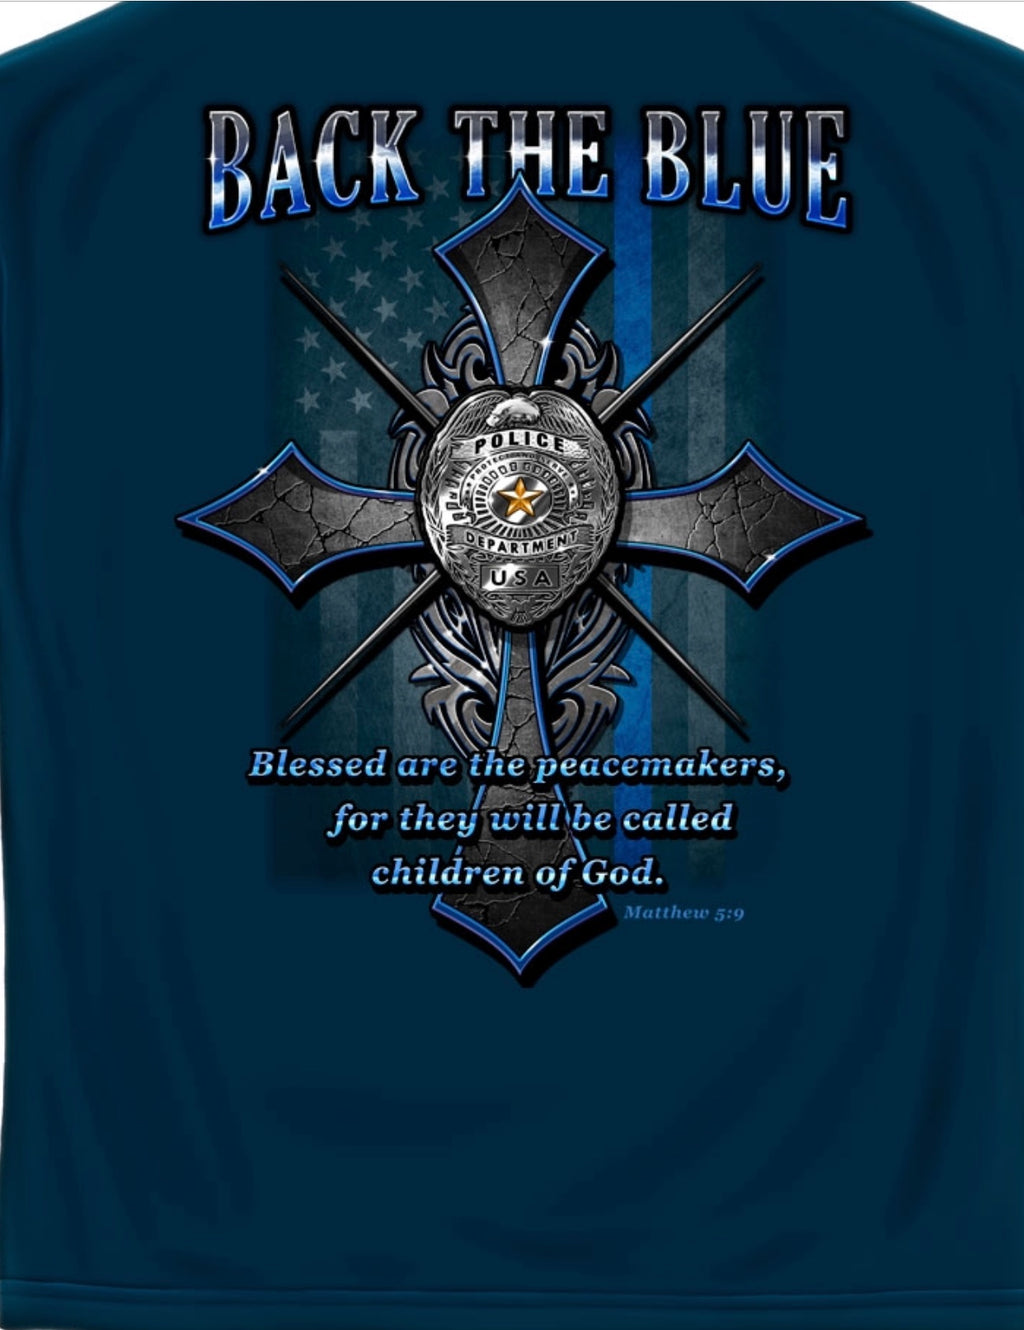 Back The Blue T Shirt - The Wall Kids, Inc.